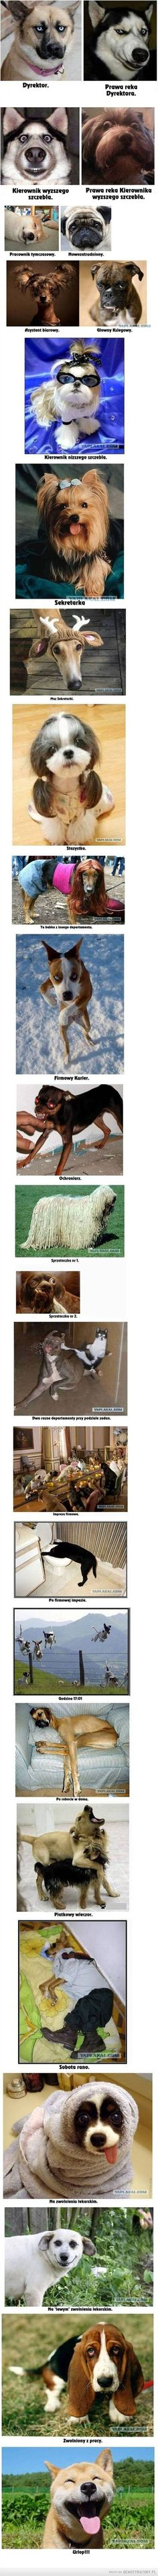 Korporacja w psim wydaniu Cute Cats And Dogs, Animals And Pets, Funny Animals, Cute Animals, Really Funny Pictures, Funny Photos, Wtf Funny, Funny Cute, Weekend Humor